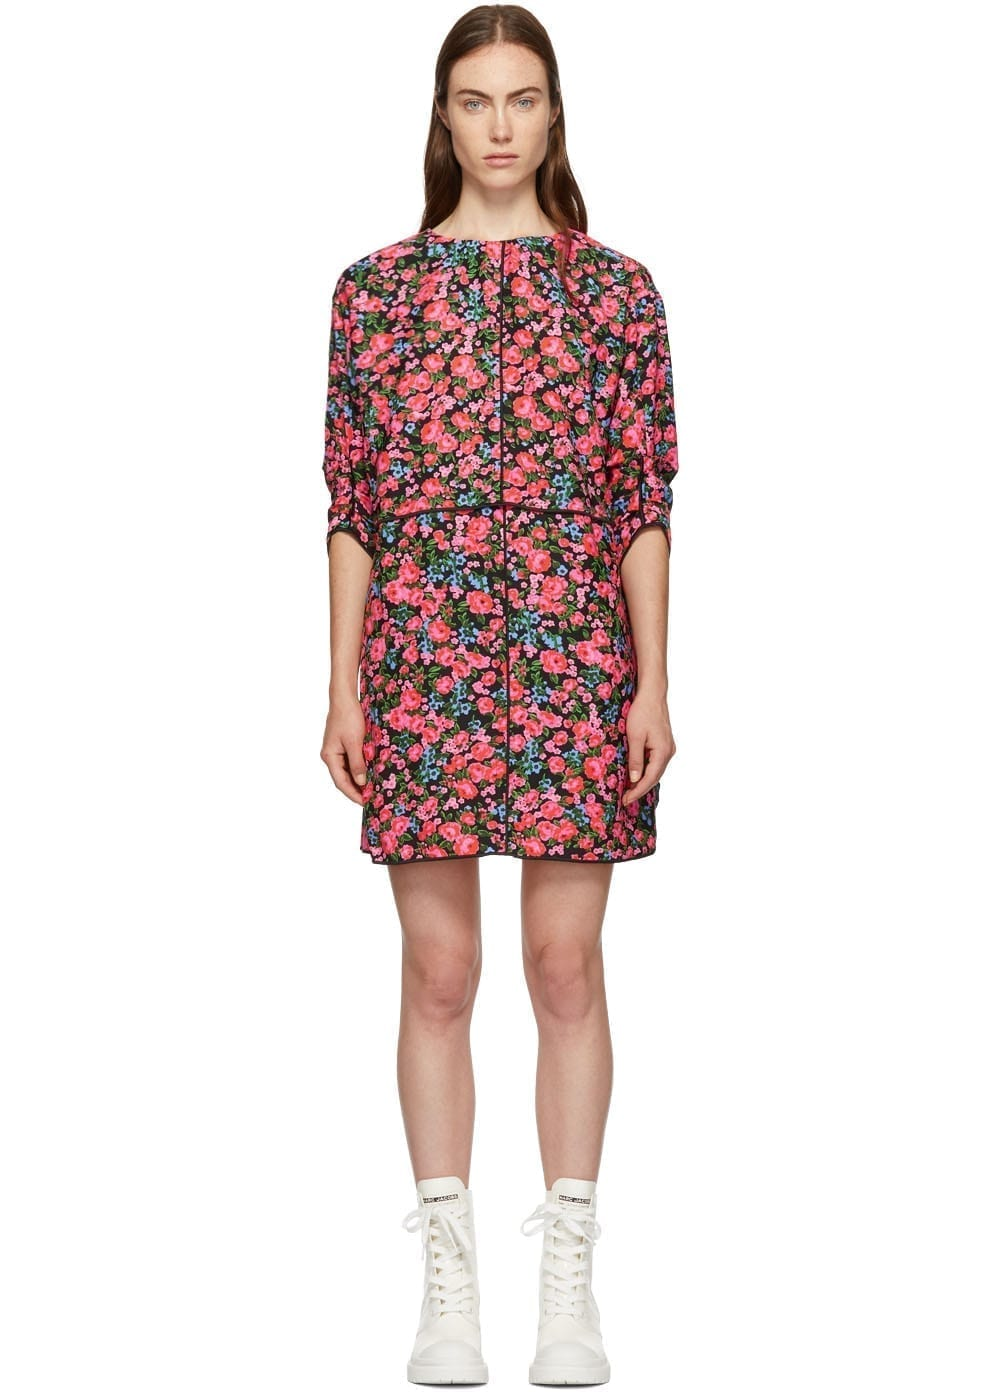 c8d30f1e491f MARC JACOBS Crop Shoulder Multi / Floral Printed Dress - We Select ...